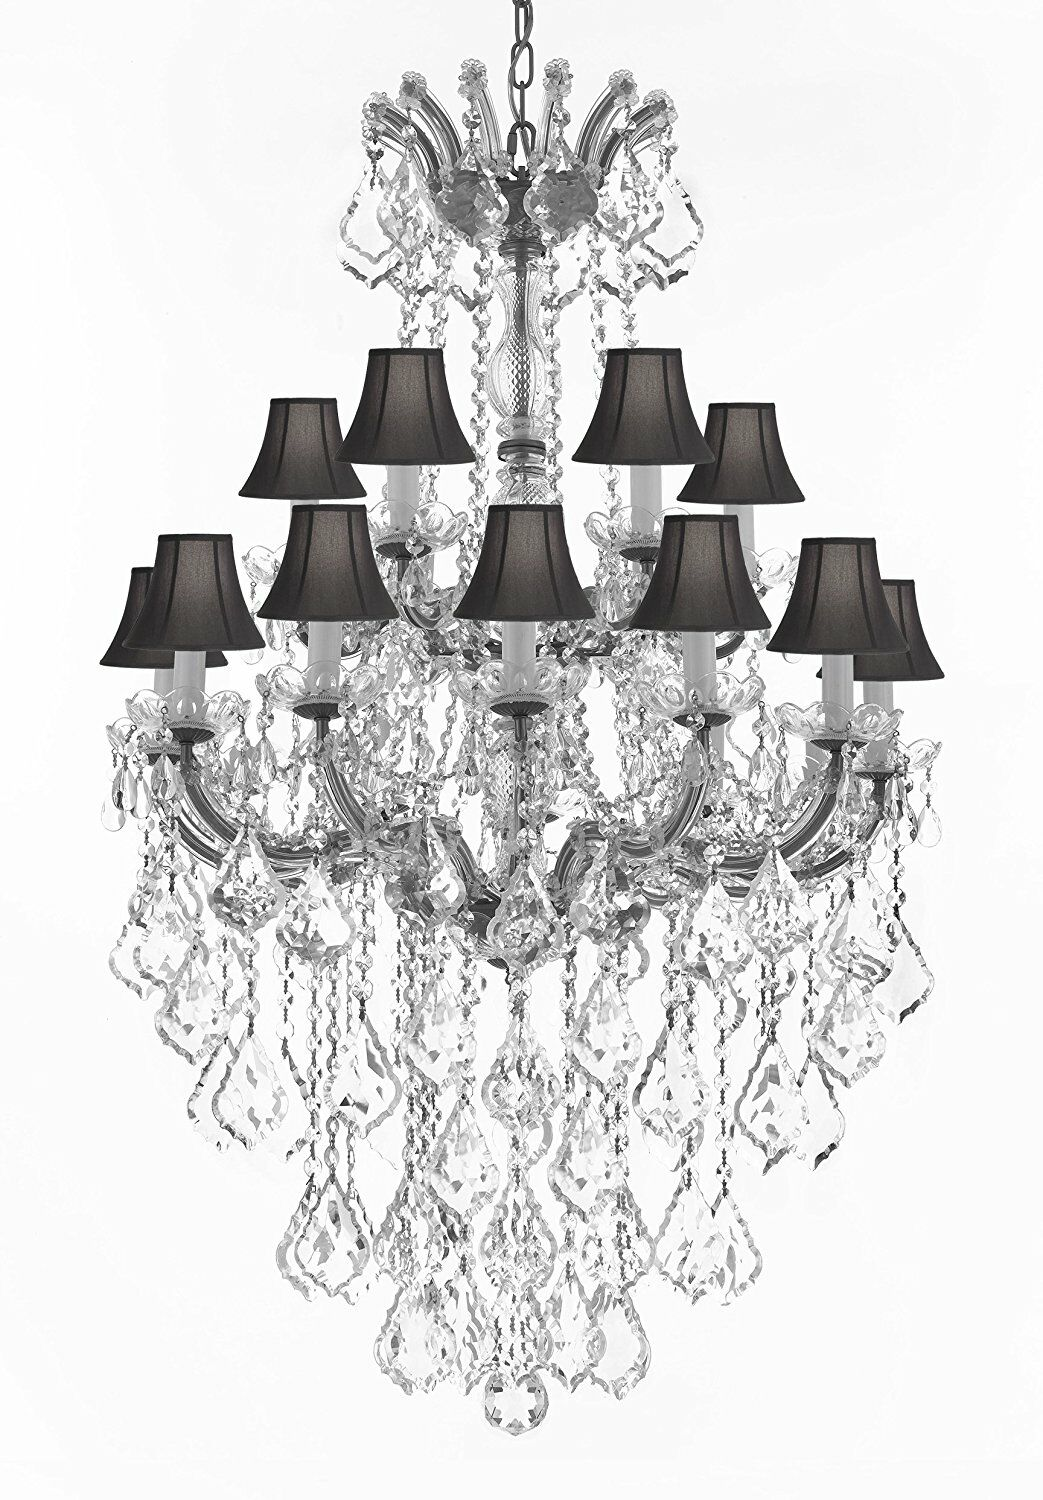 Alvarado 18-Light Traditional Spectra Shaded Chandelier Shade Color: Black, Color: Silver